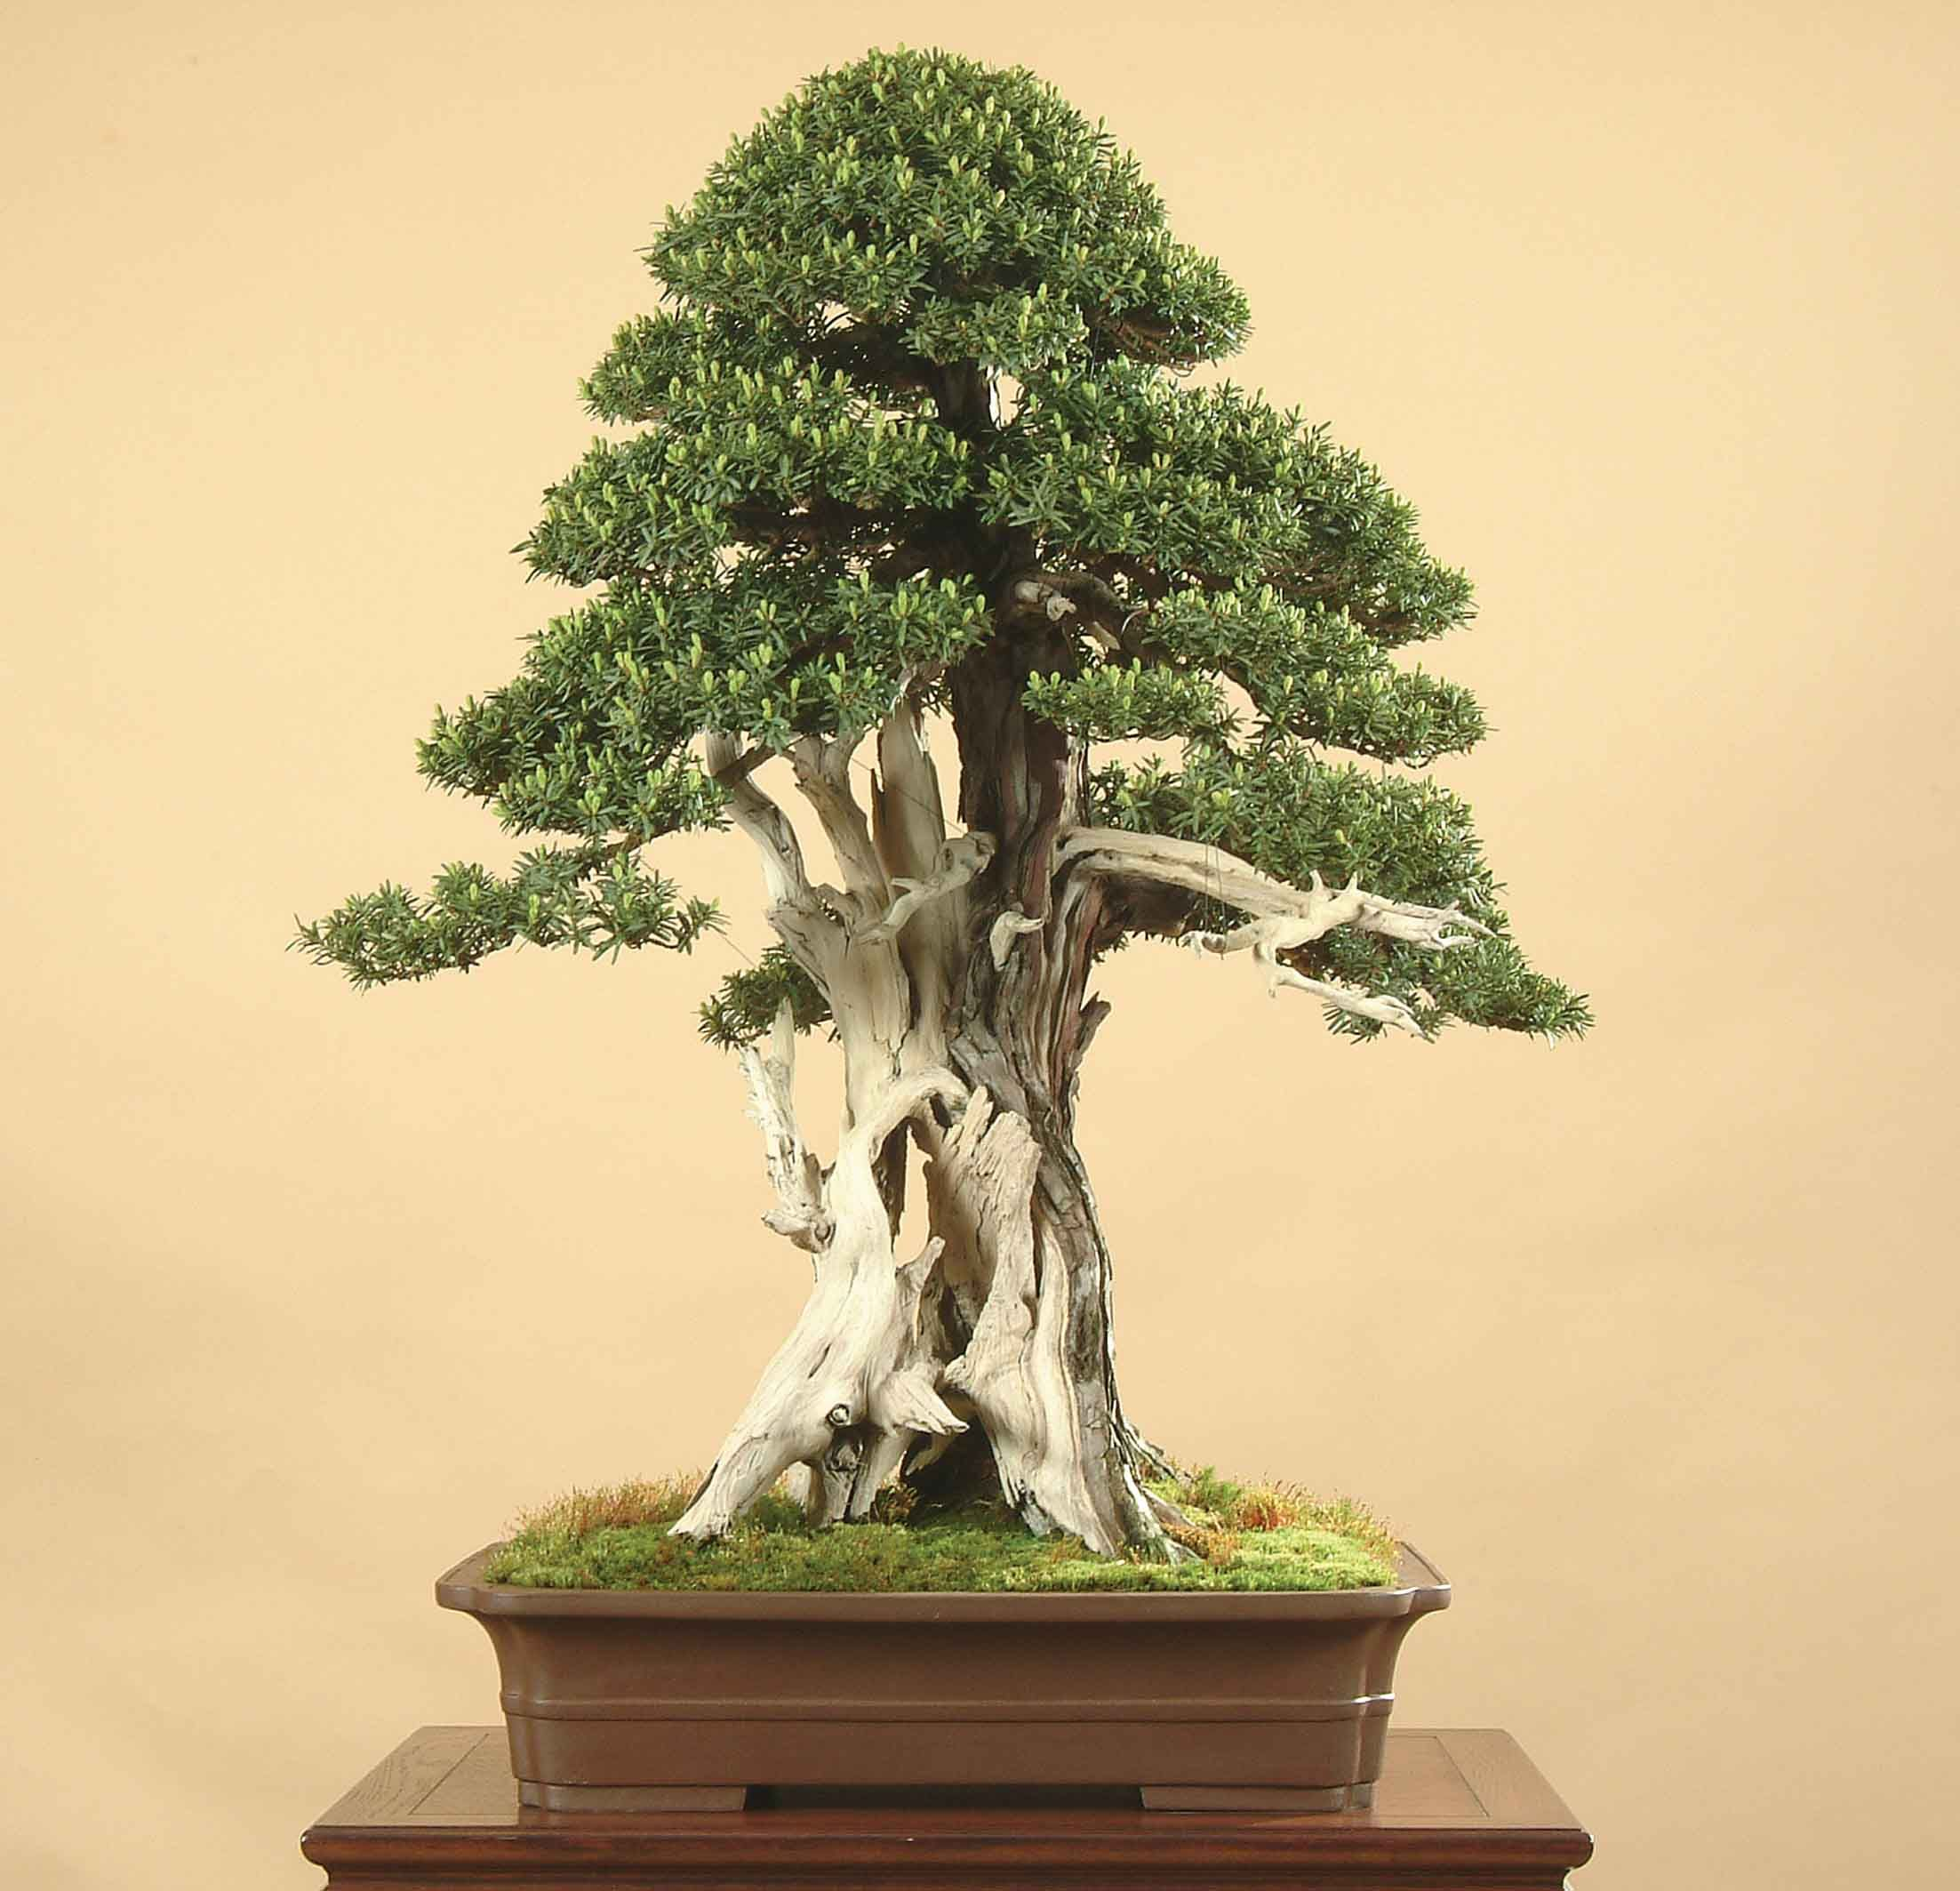 Dwarf trees to grow in containers and pots